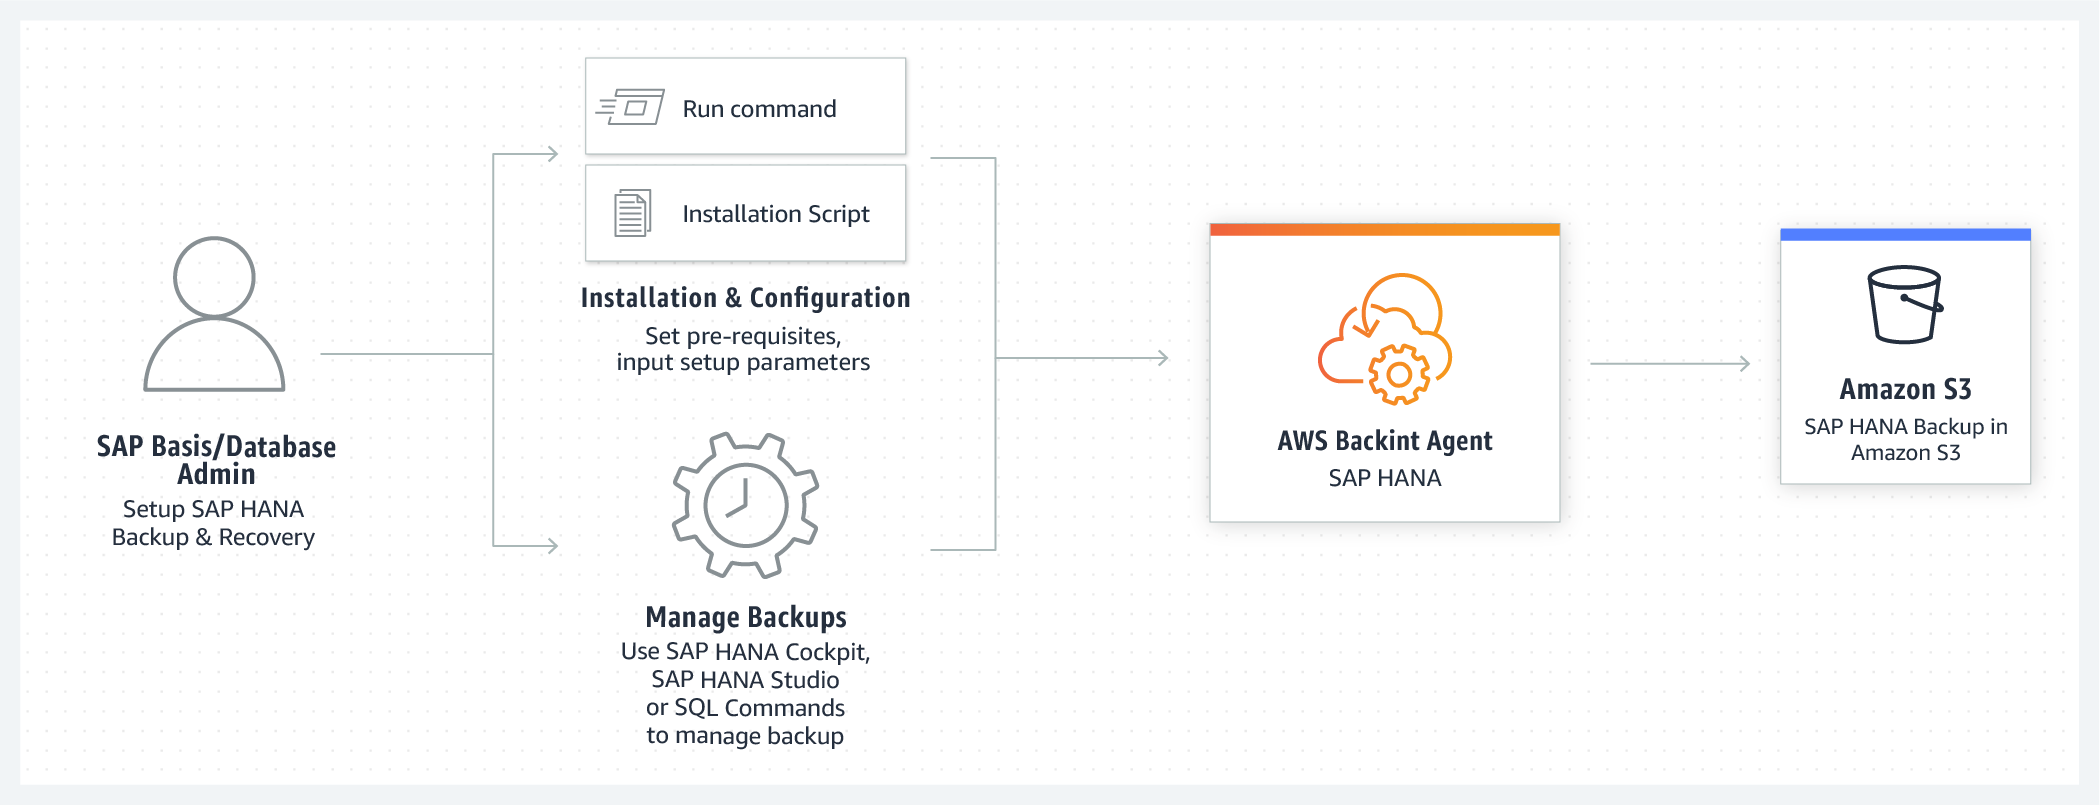 How AWS Backint Agent works